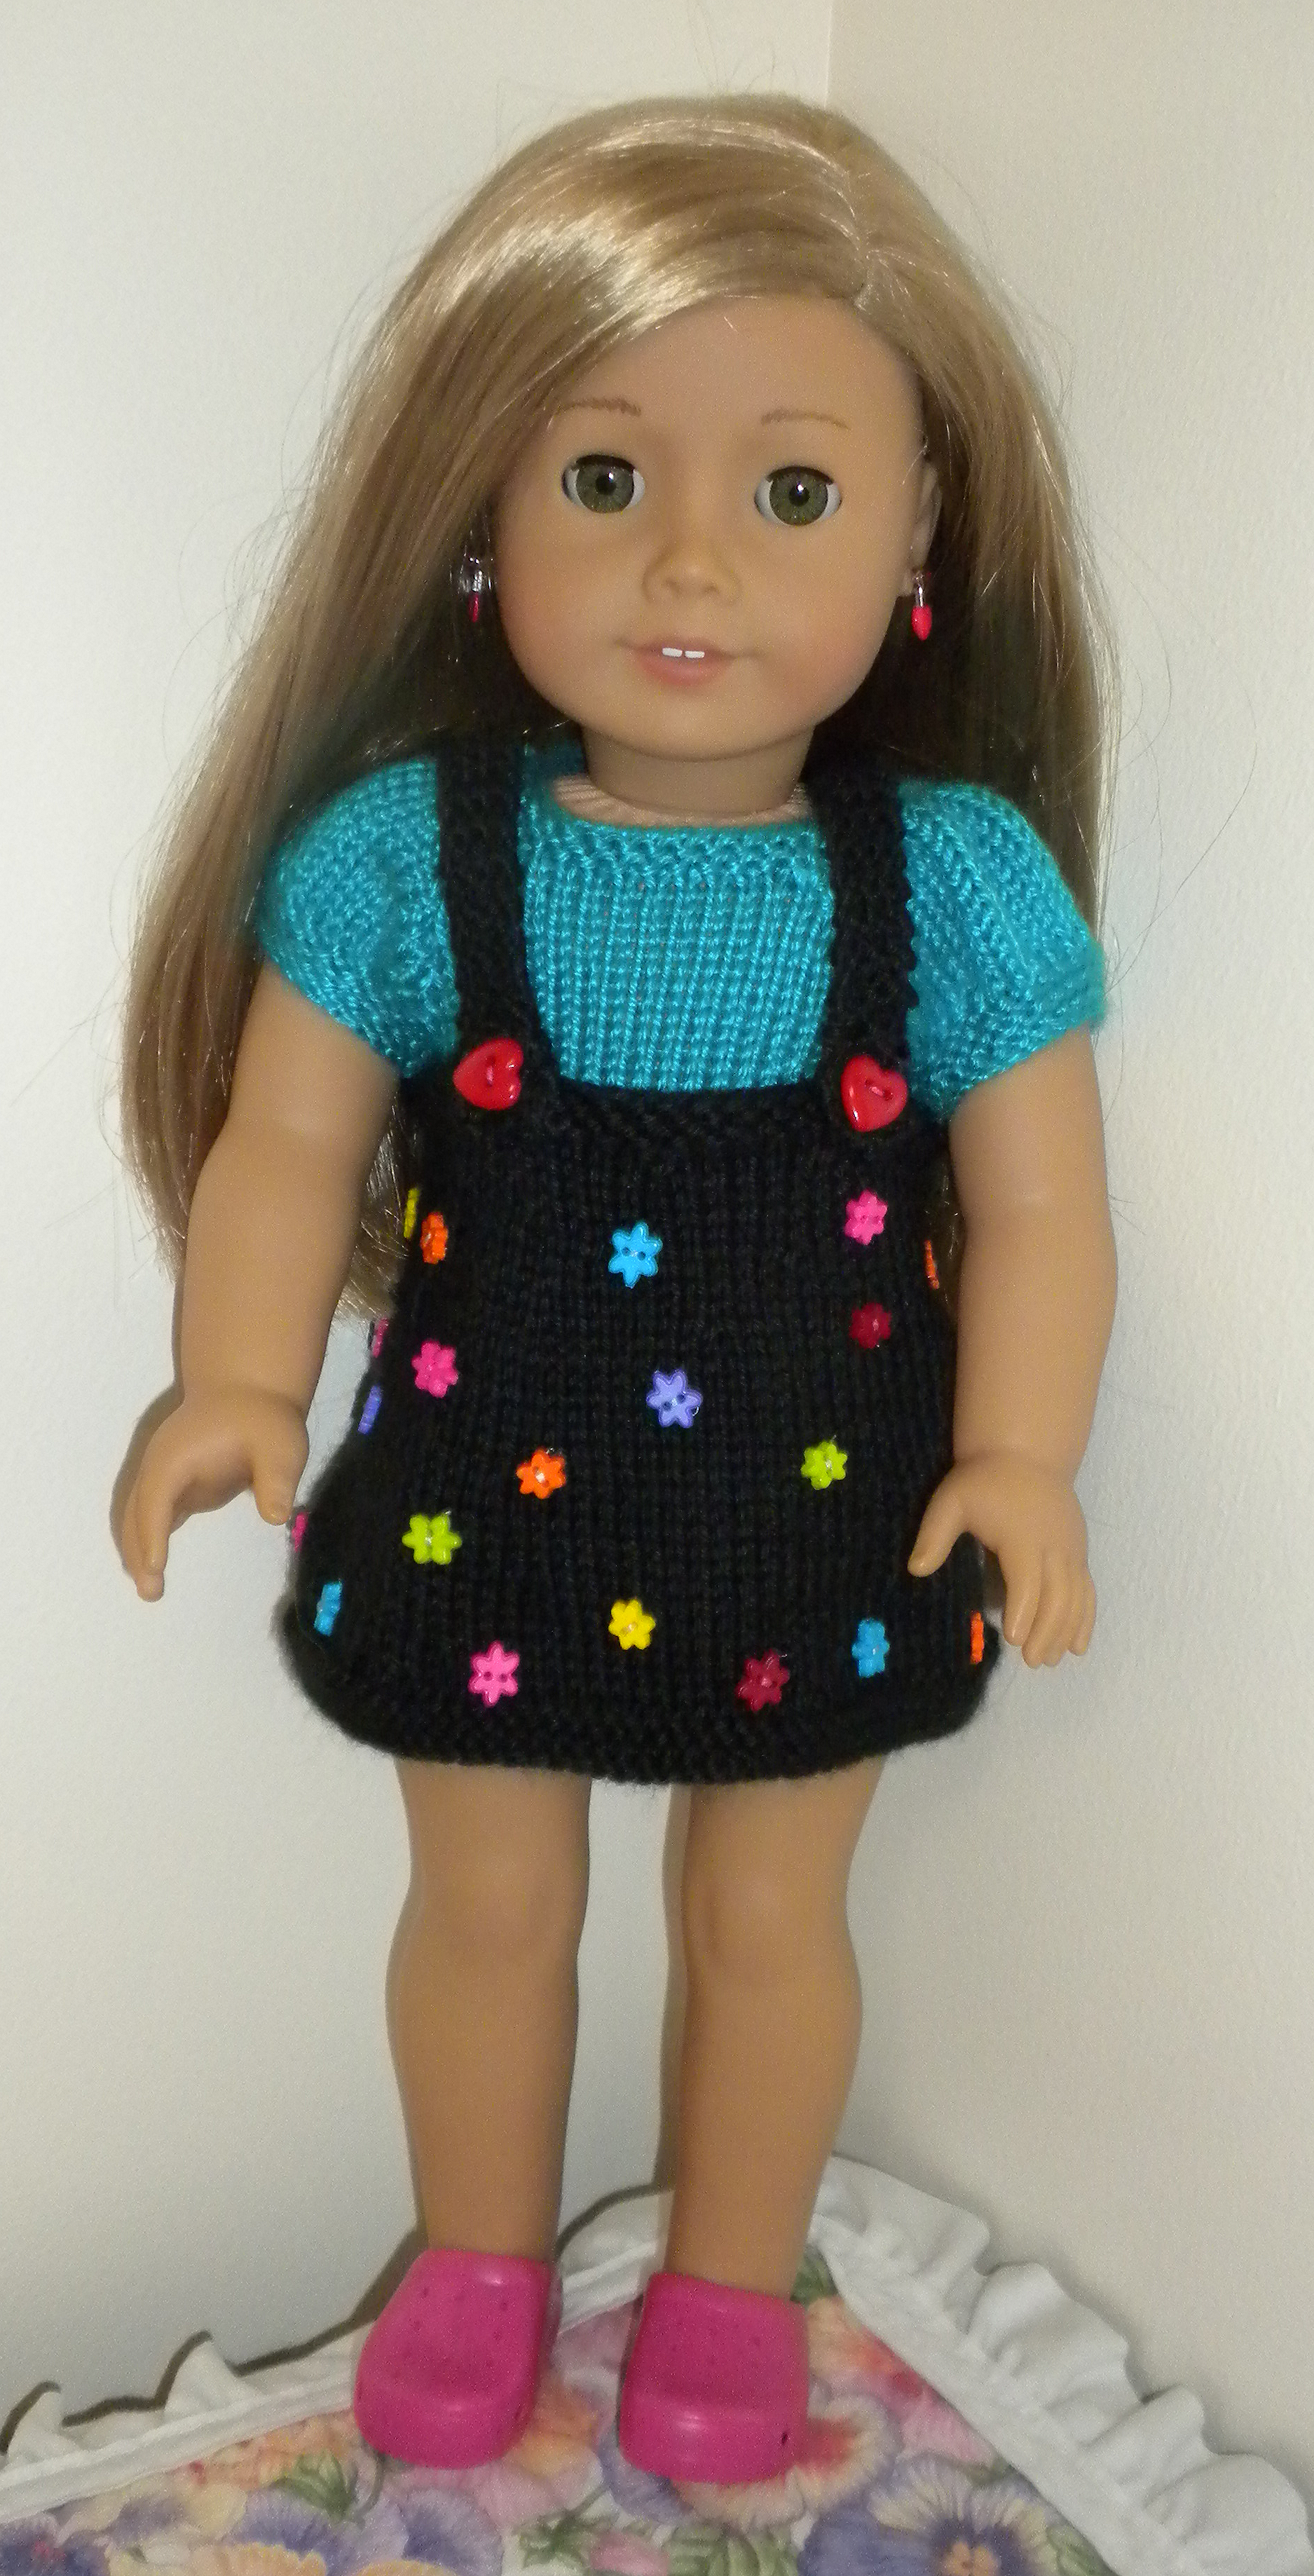 Link too free pattern http://crutchleydiane.wix.com/dollie-clothes ...